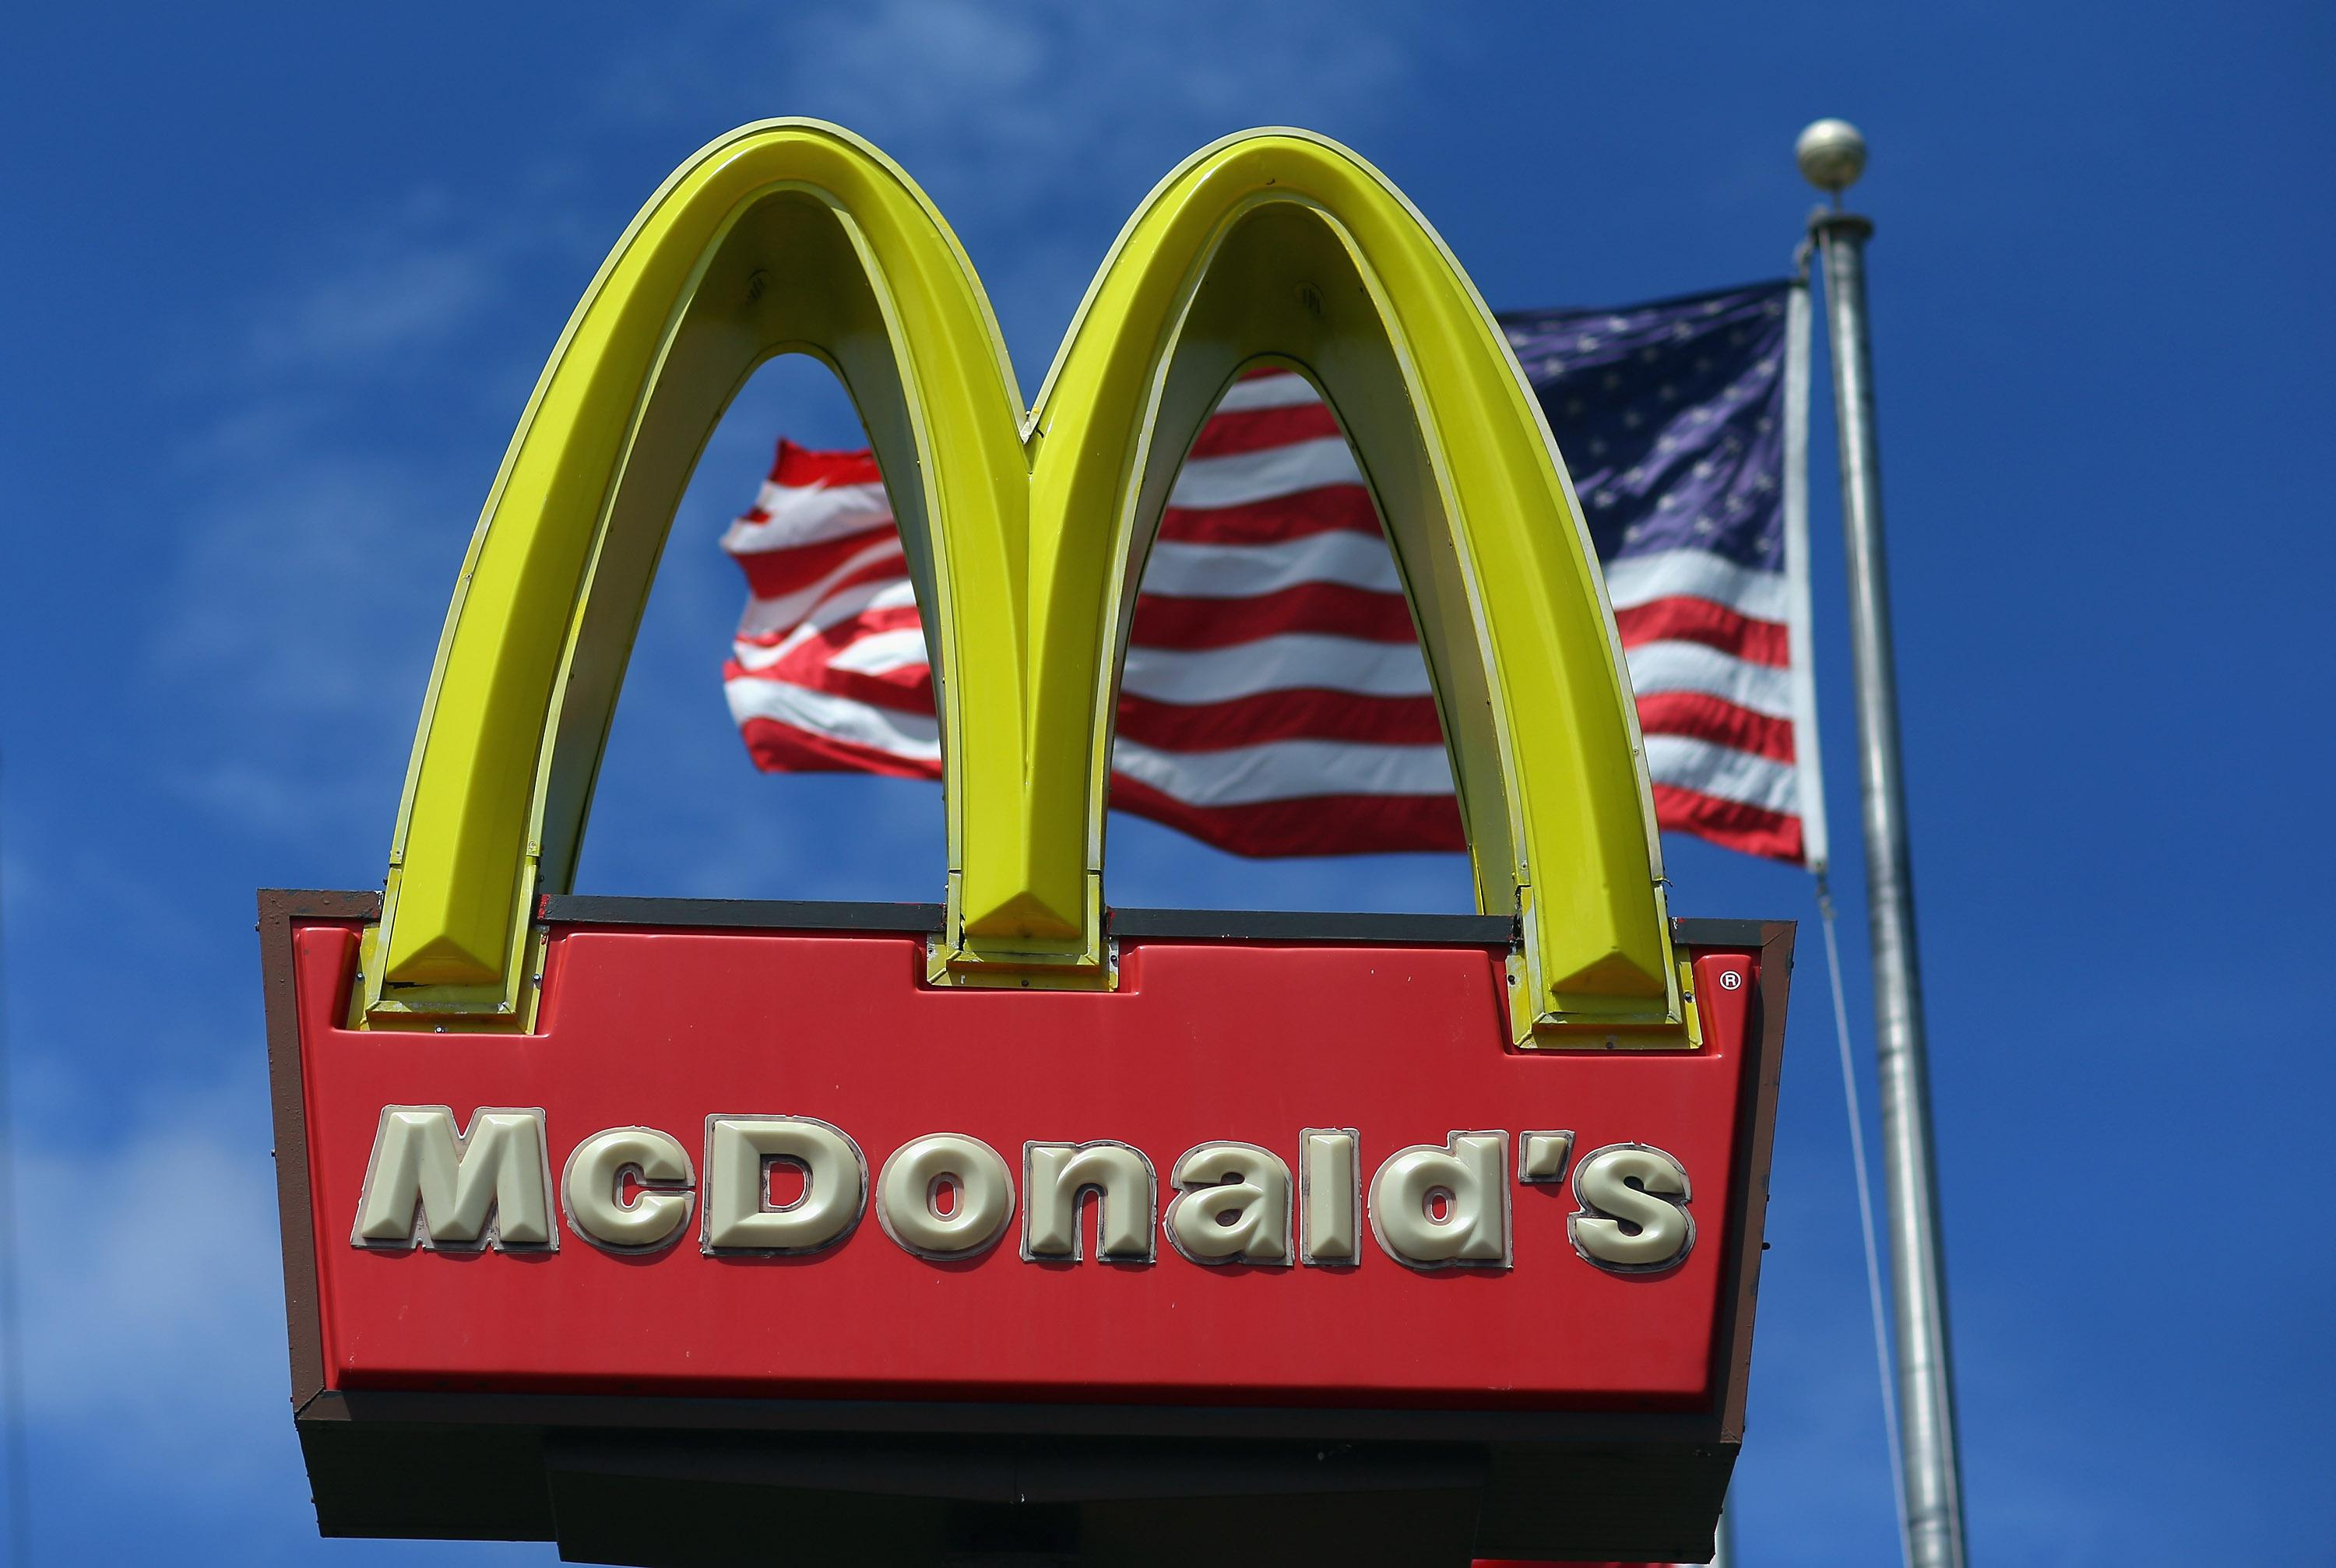 McDonalds Q2 Profit Drops 4.5 Percent On Stronger Dollar, Tougher Competition